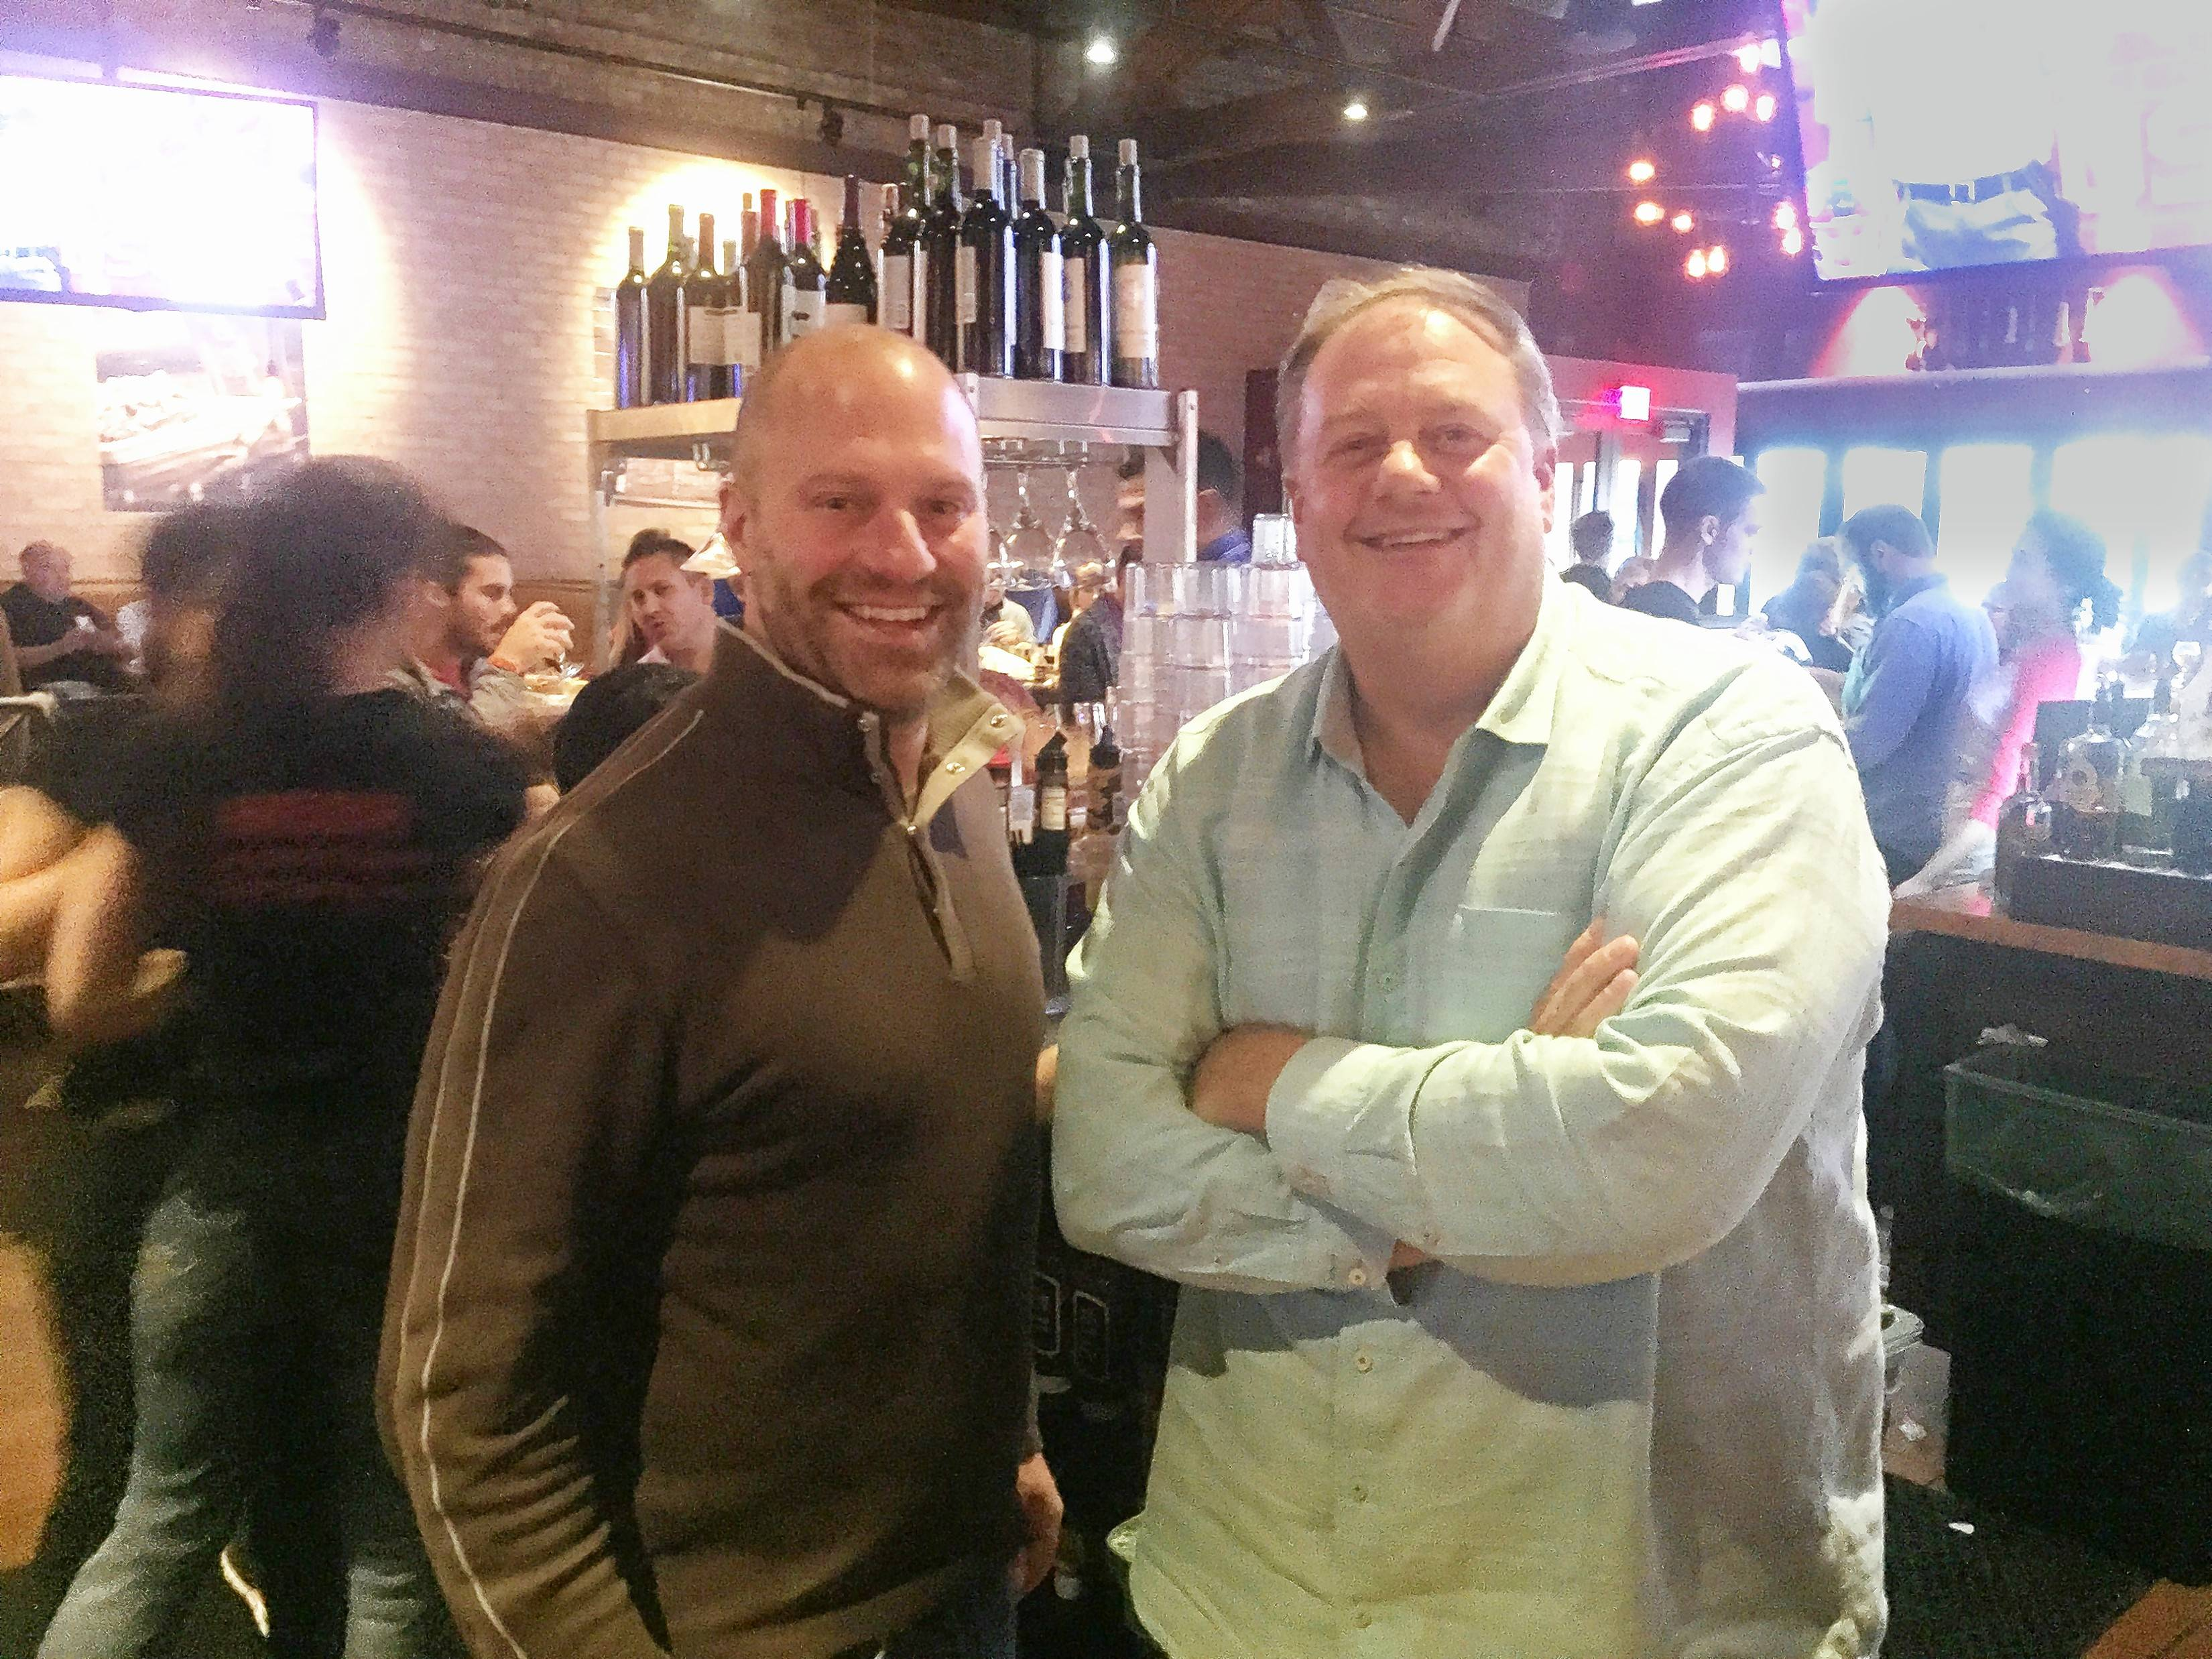 Owners Mark Zych, at left, and Scott Ward are ready to expand Tap House Grill with franchises.